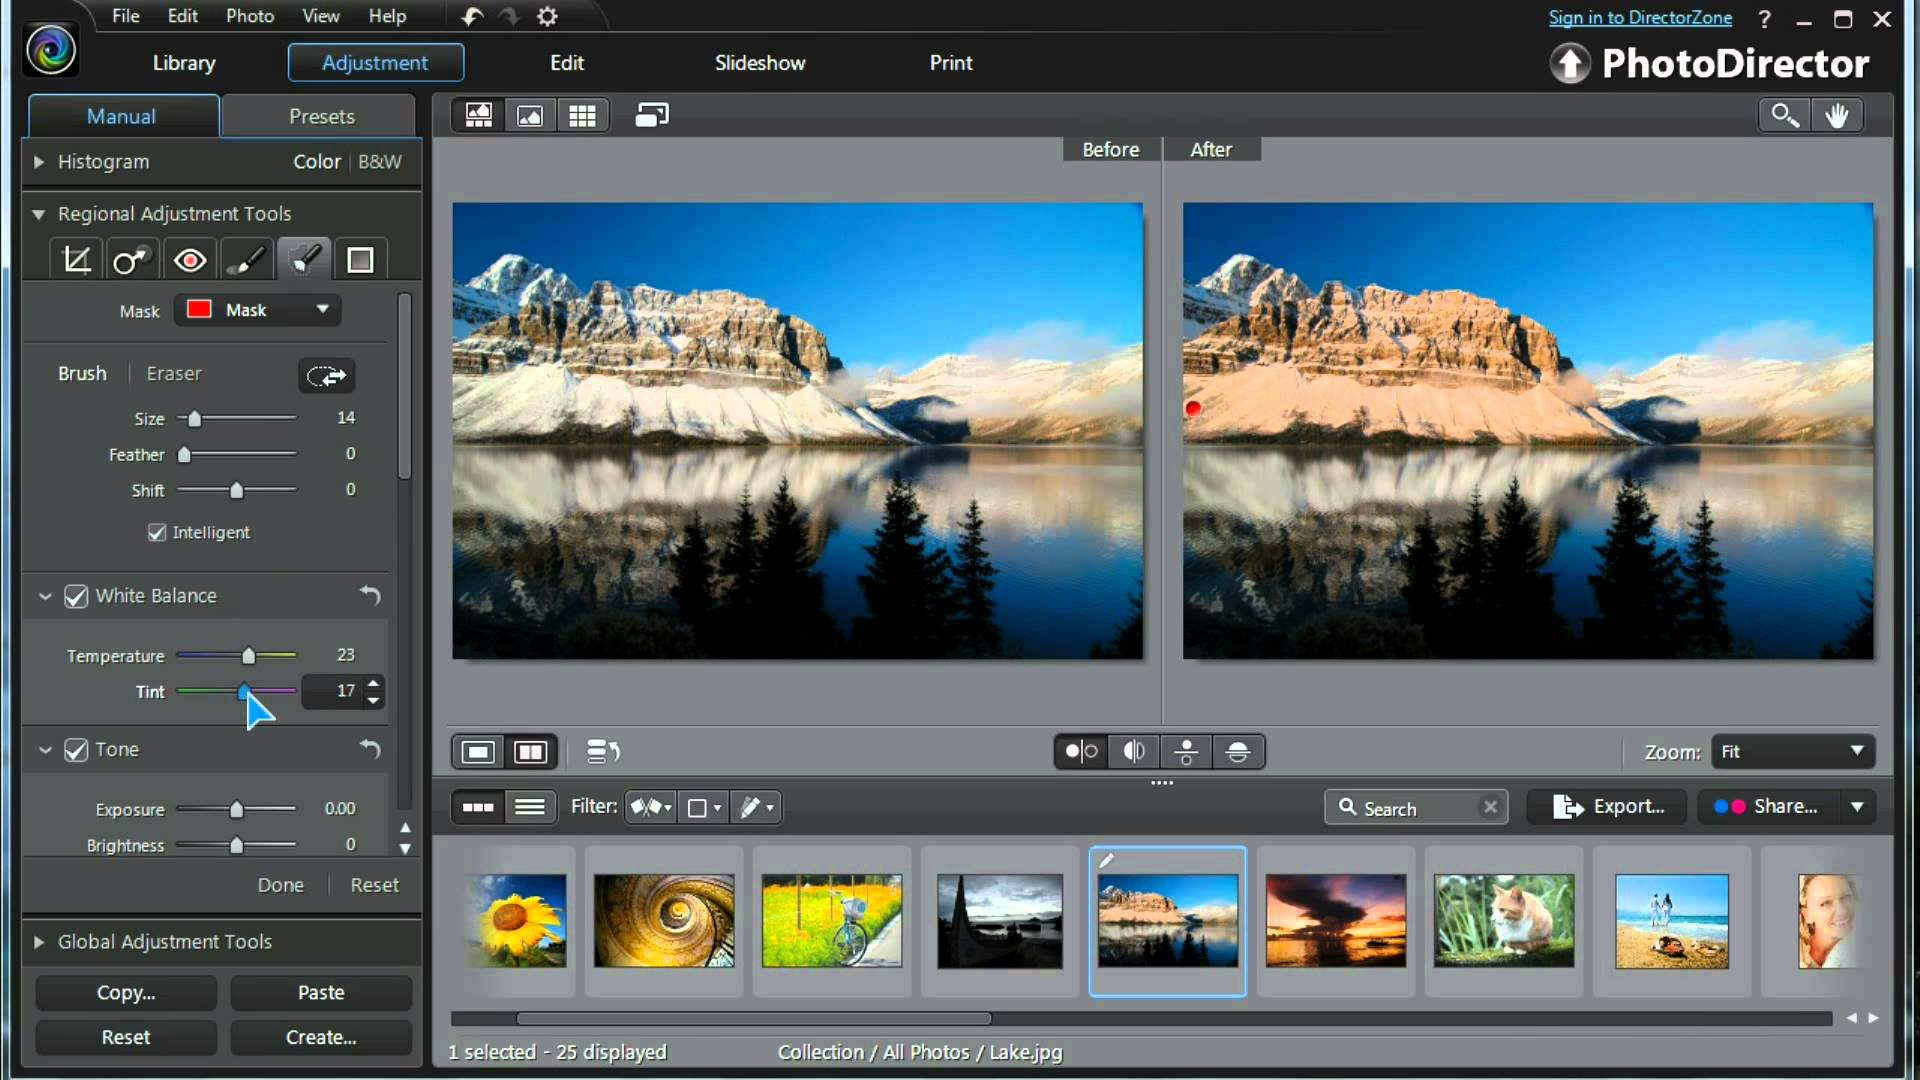 PhotoDirector 8.0.3019 Crack & Serial Key With Keygen Download